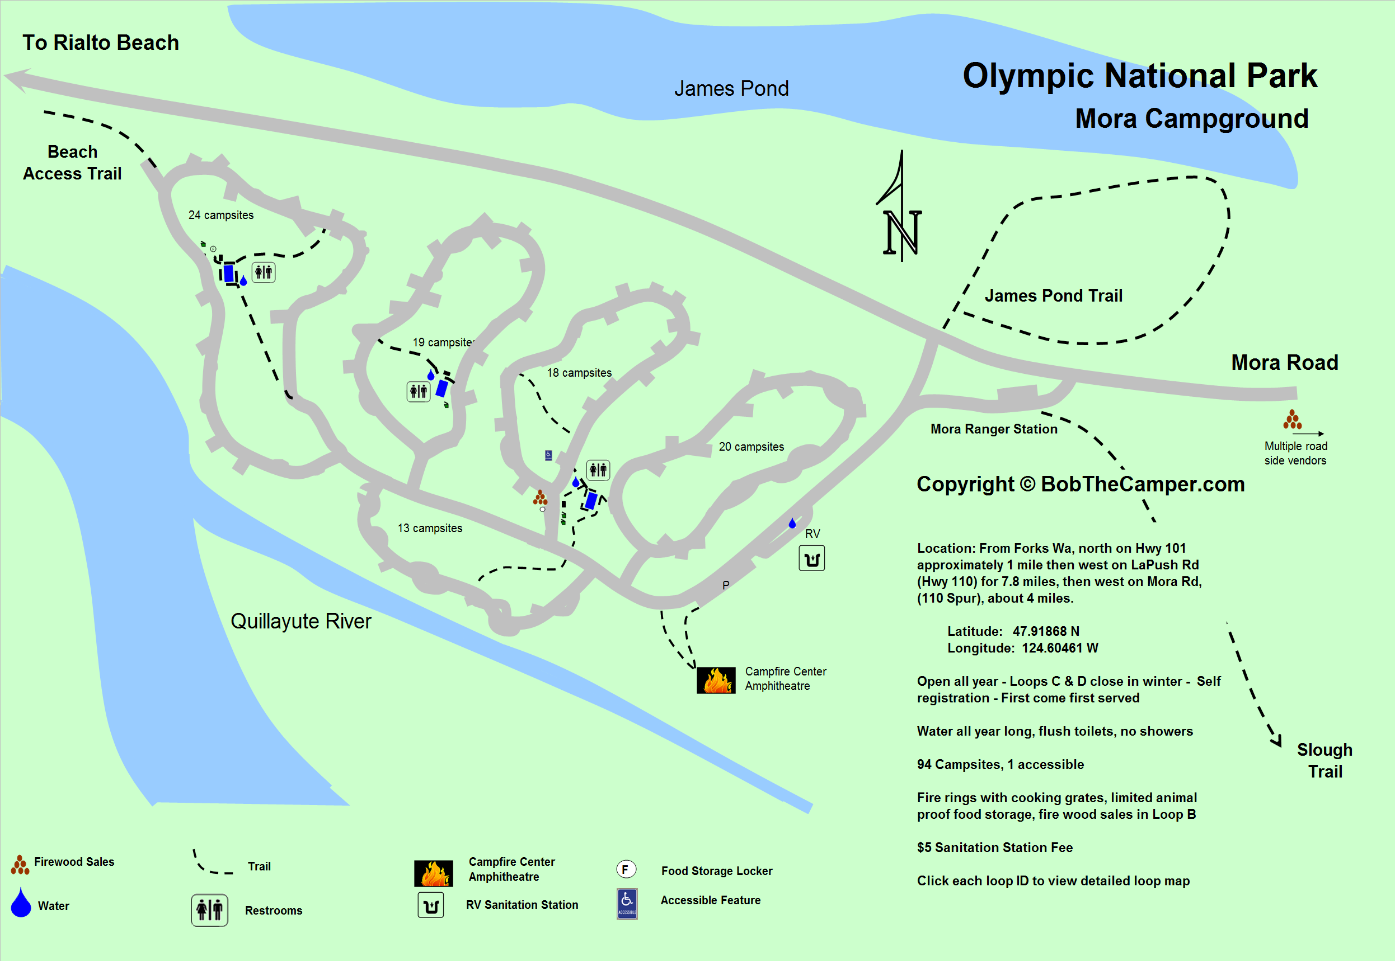 Mora Campground Map - Rialto Beach -  Olympic National Park